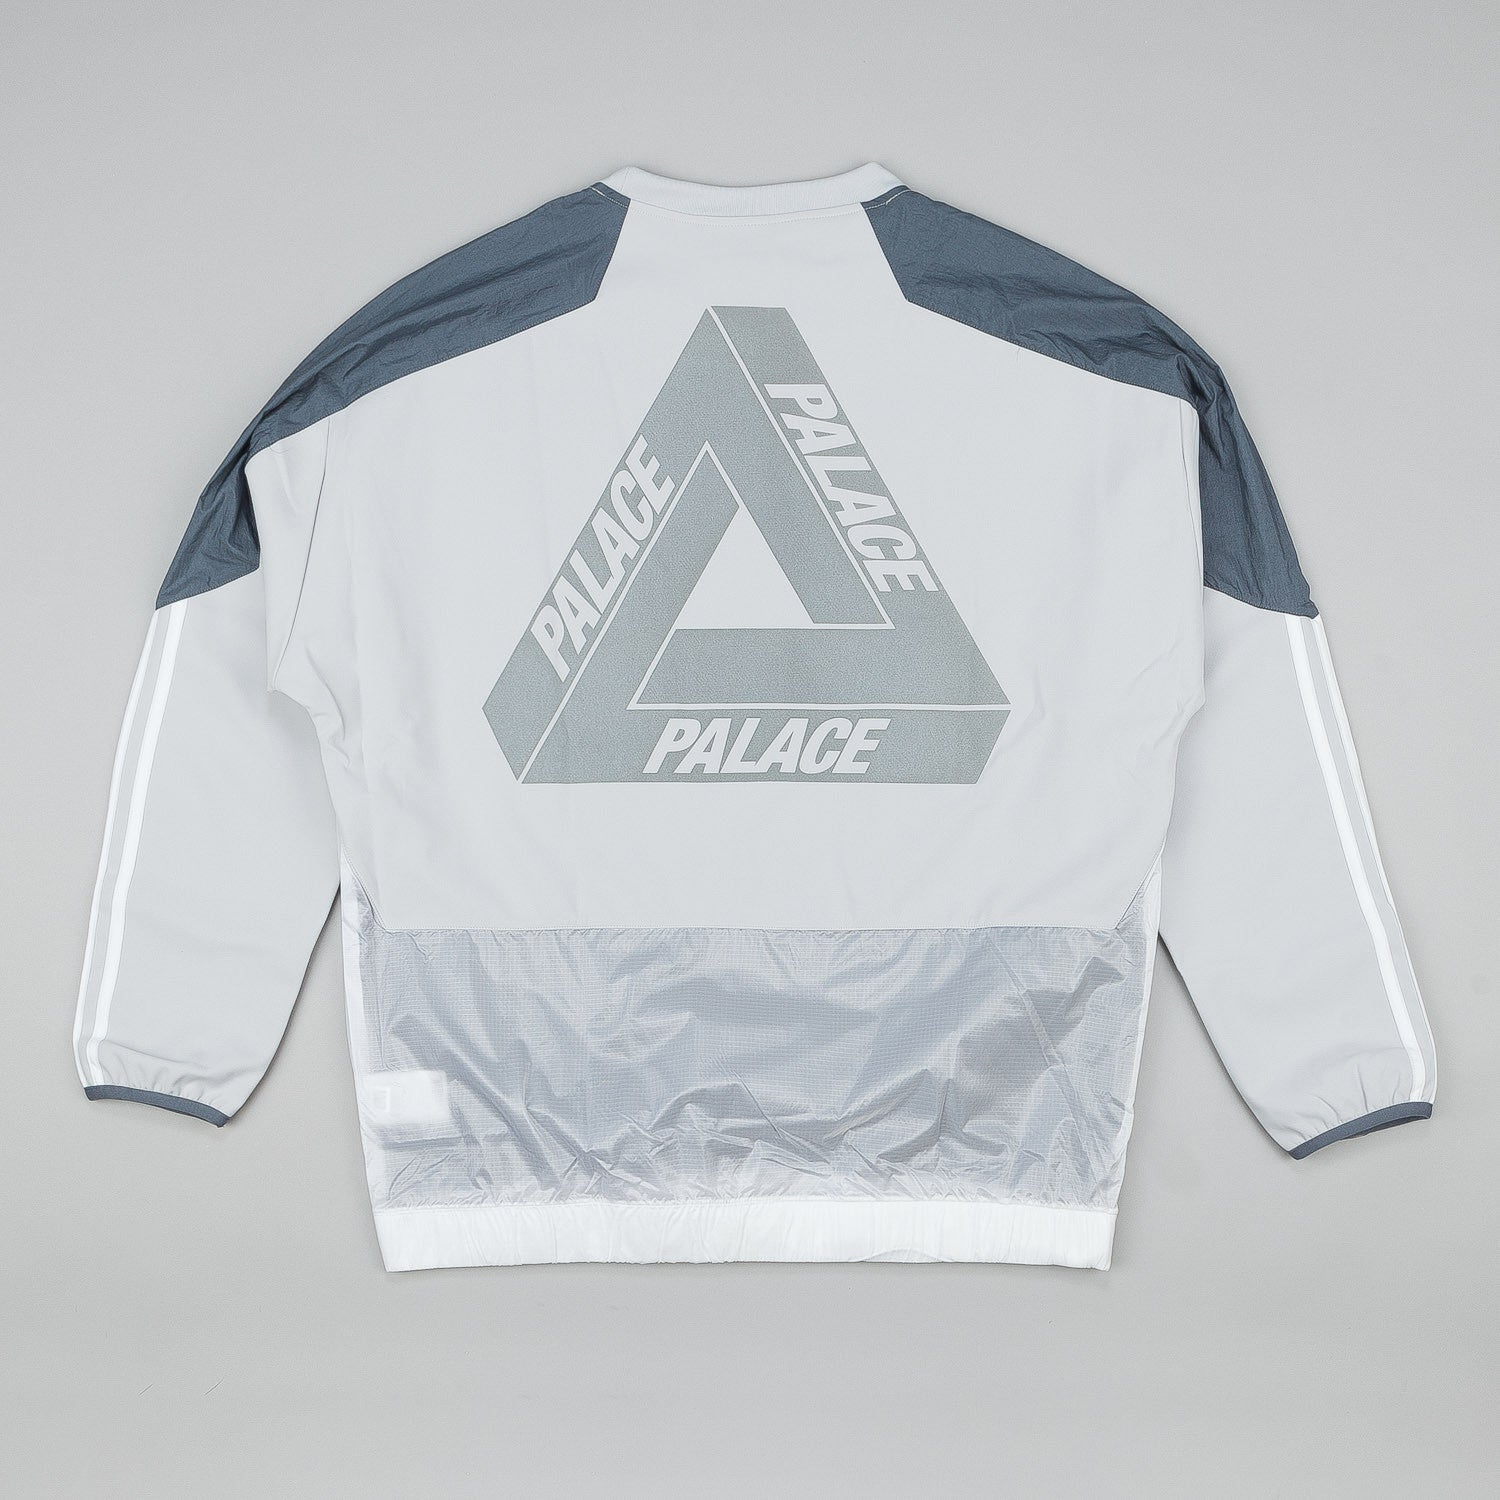 Adidas x Palace Training Top Light Solid Grey